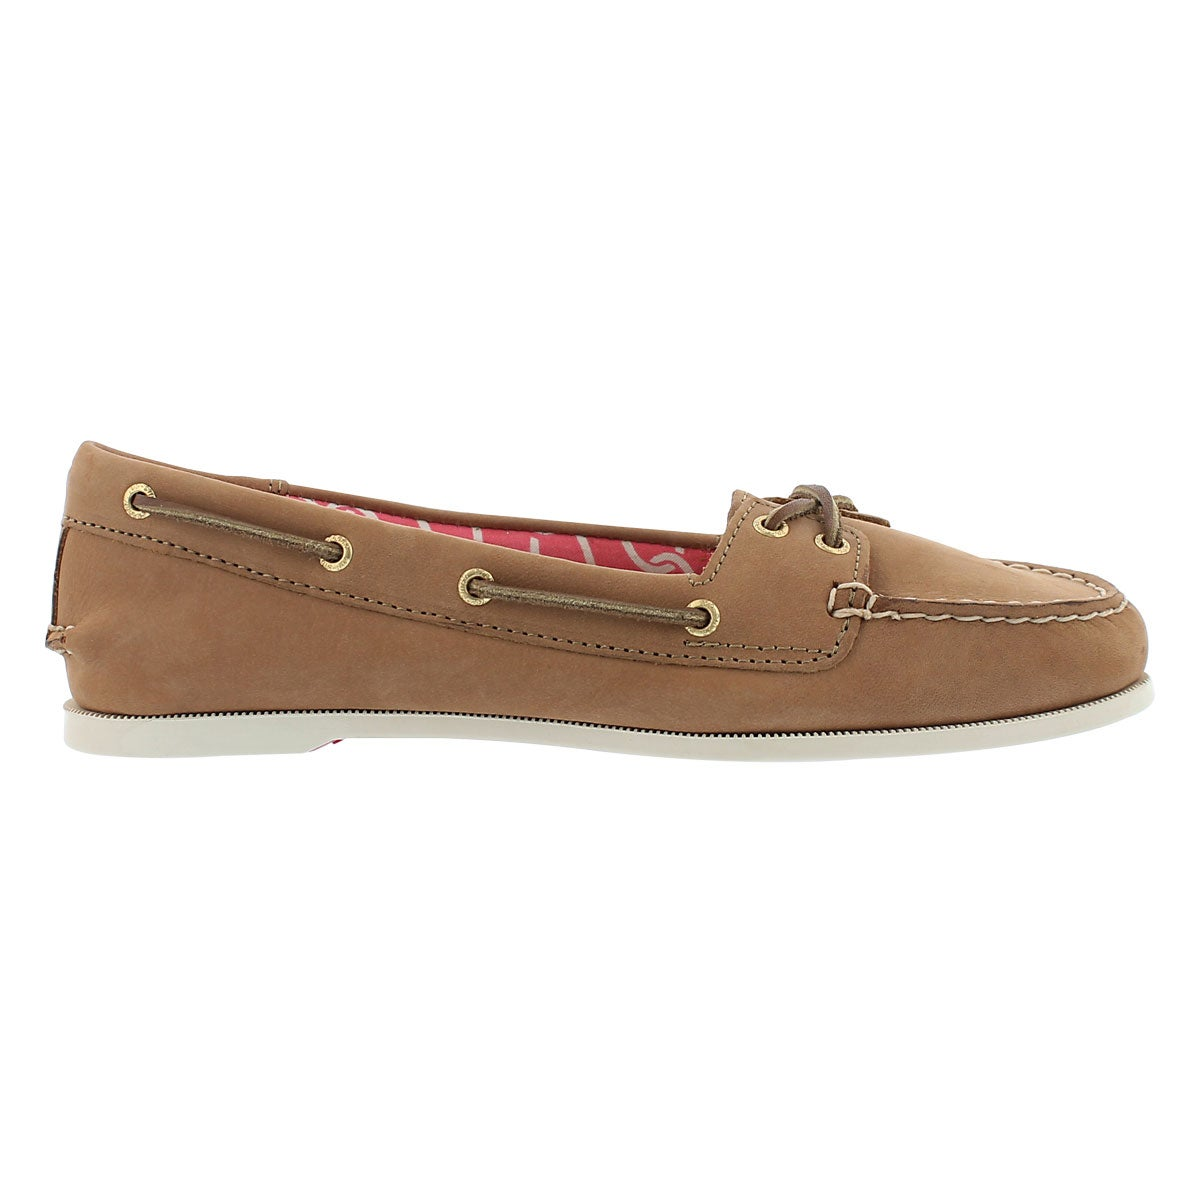 Lds Audrey desert leather boat shoe